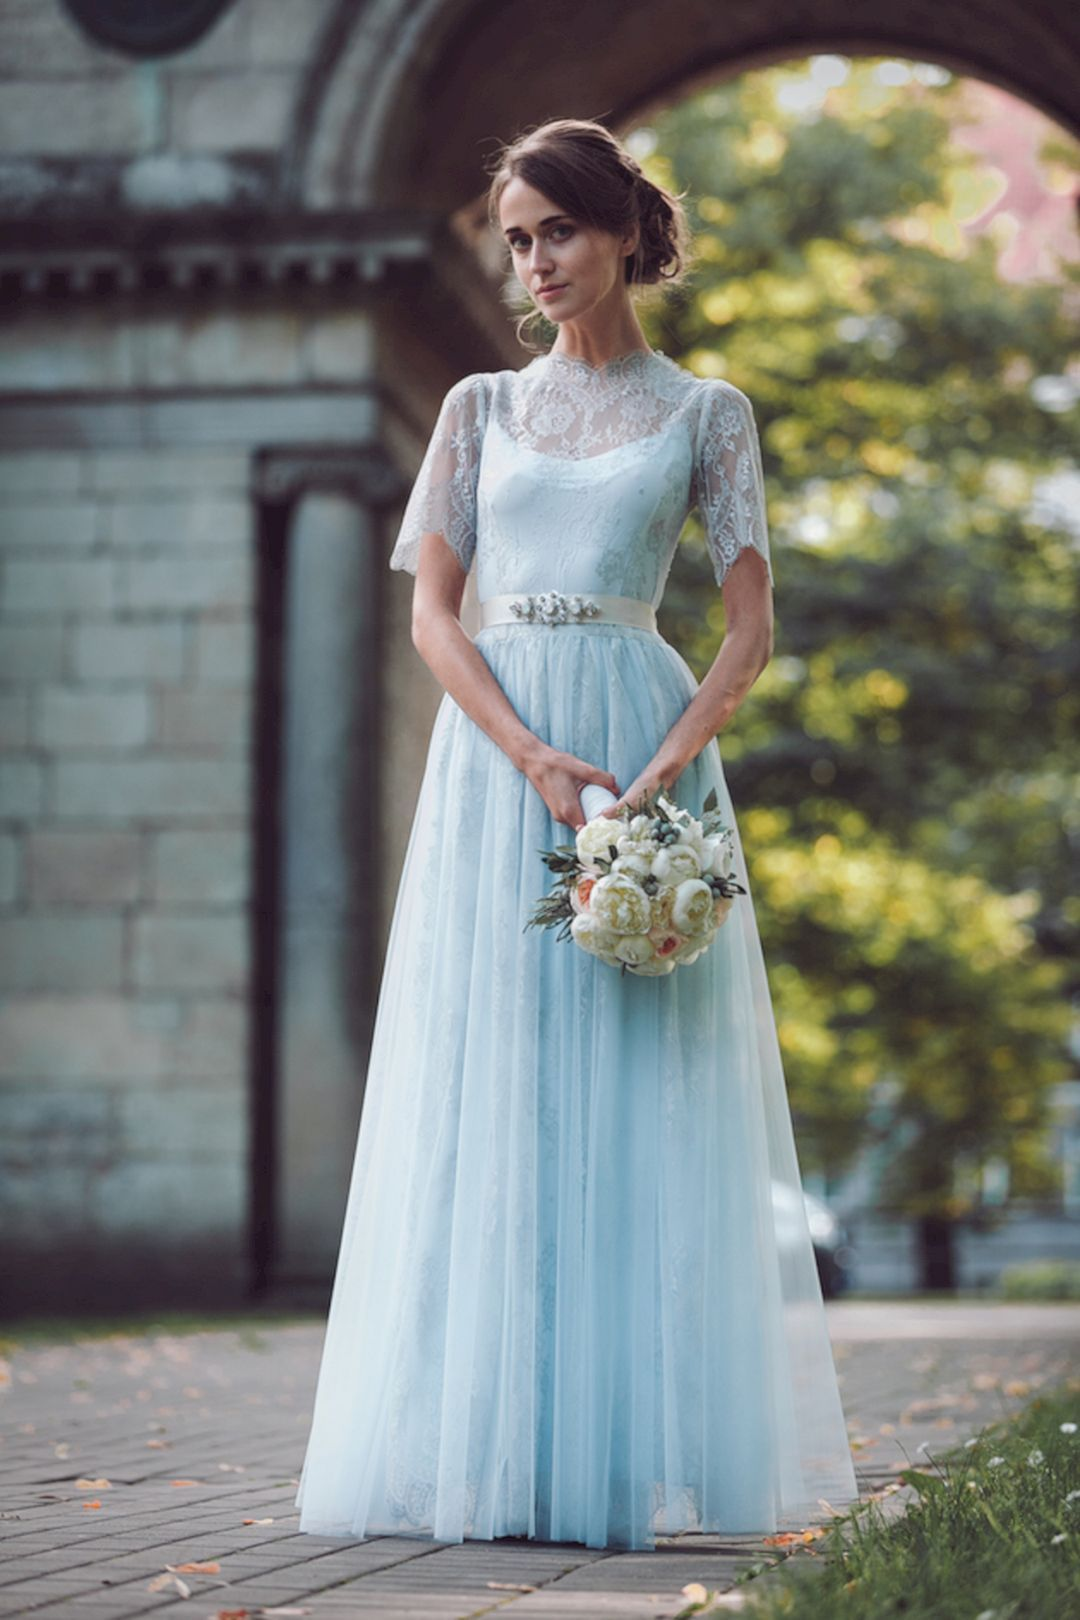 20 Beautiful Blue And White Wedding Dress Style Ideas